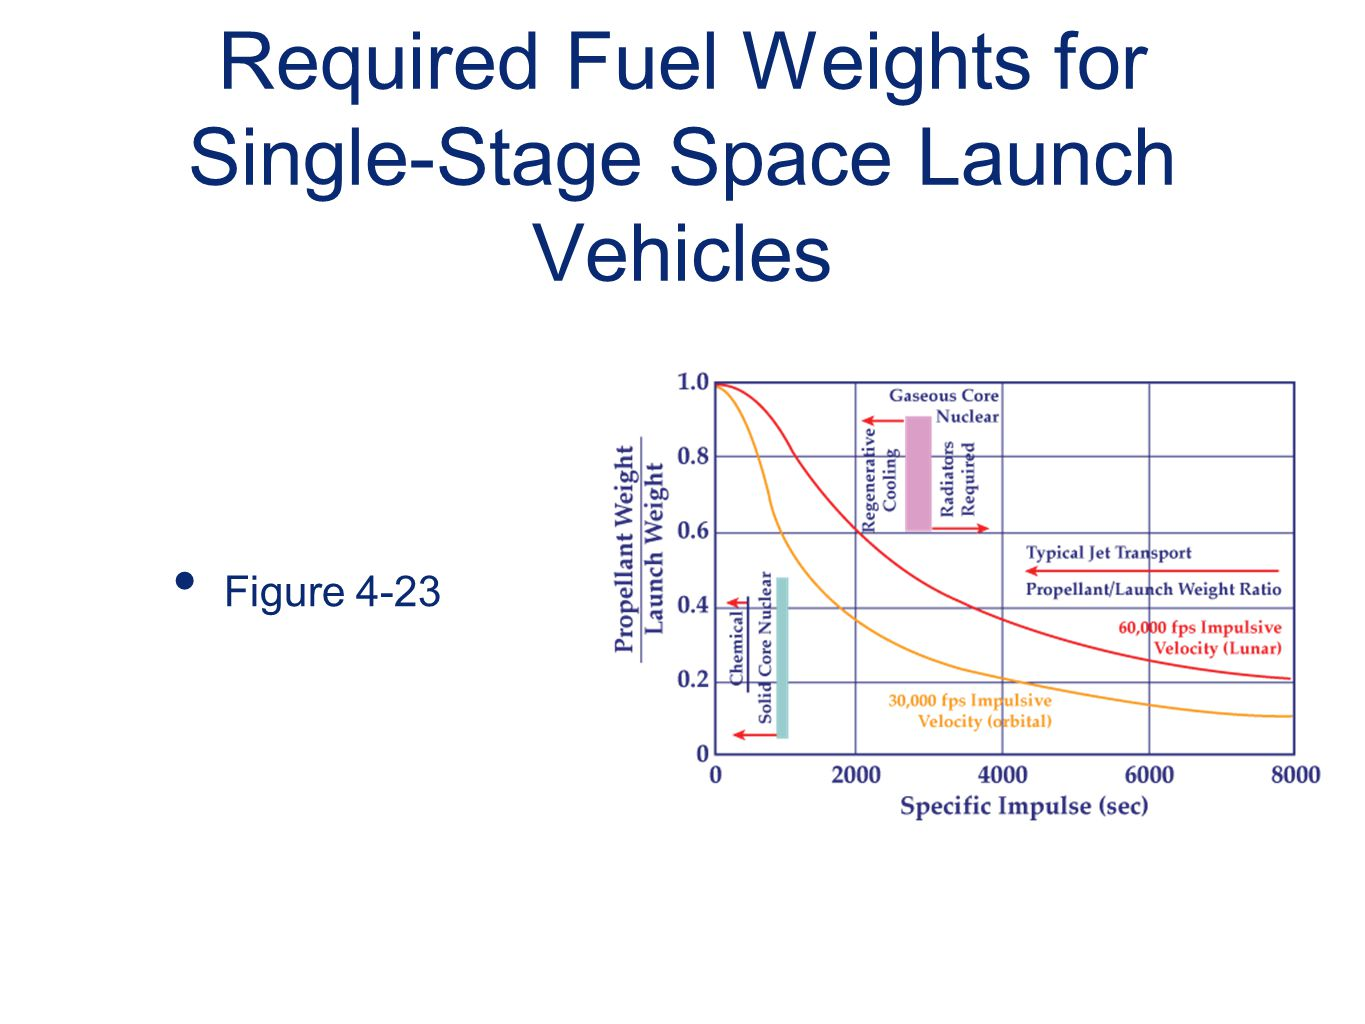 Required Fuel Weights for Single-Stage Space Launch Vehicles